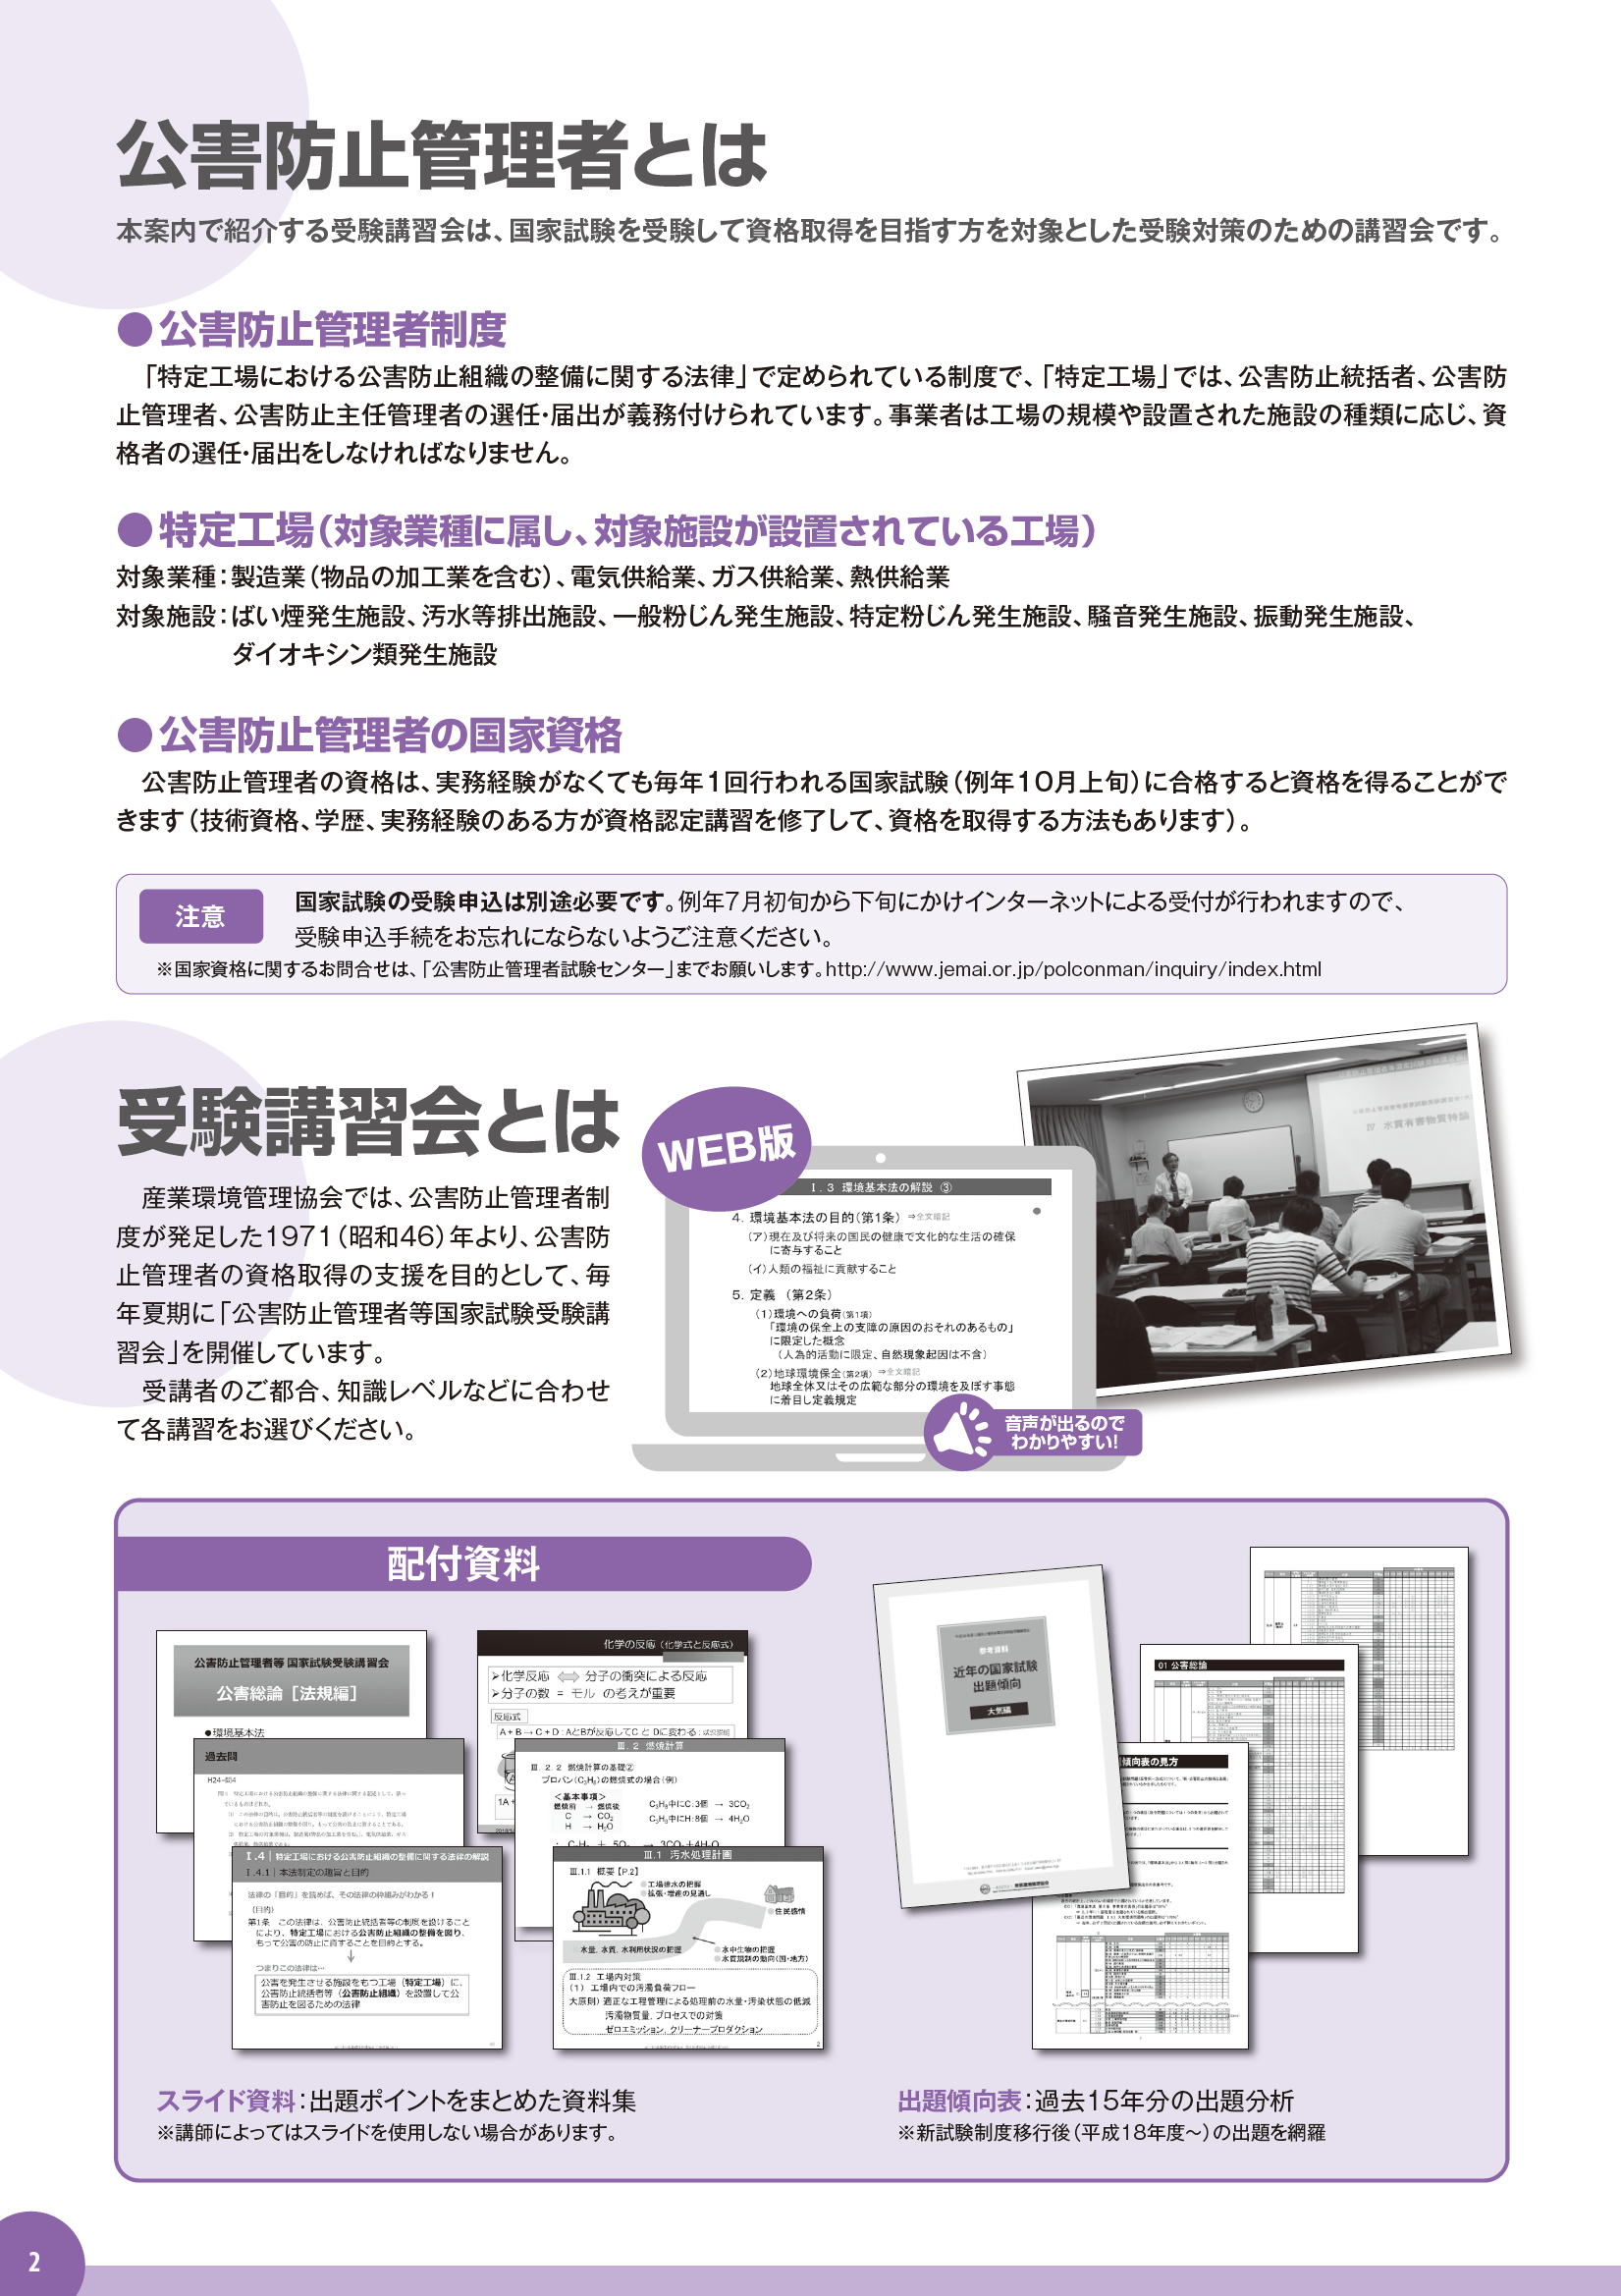 pamphlet02a_2021.png